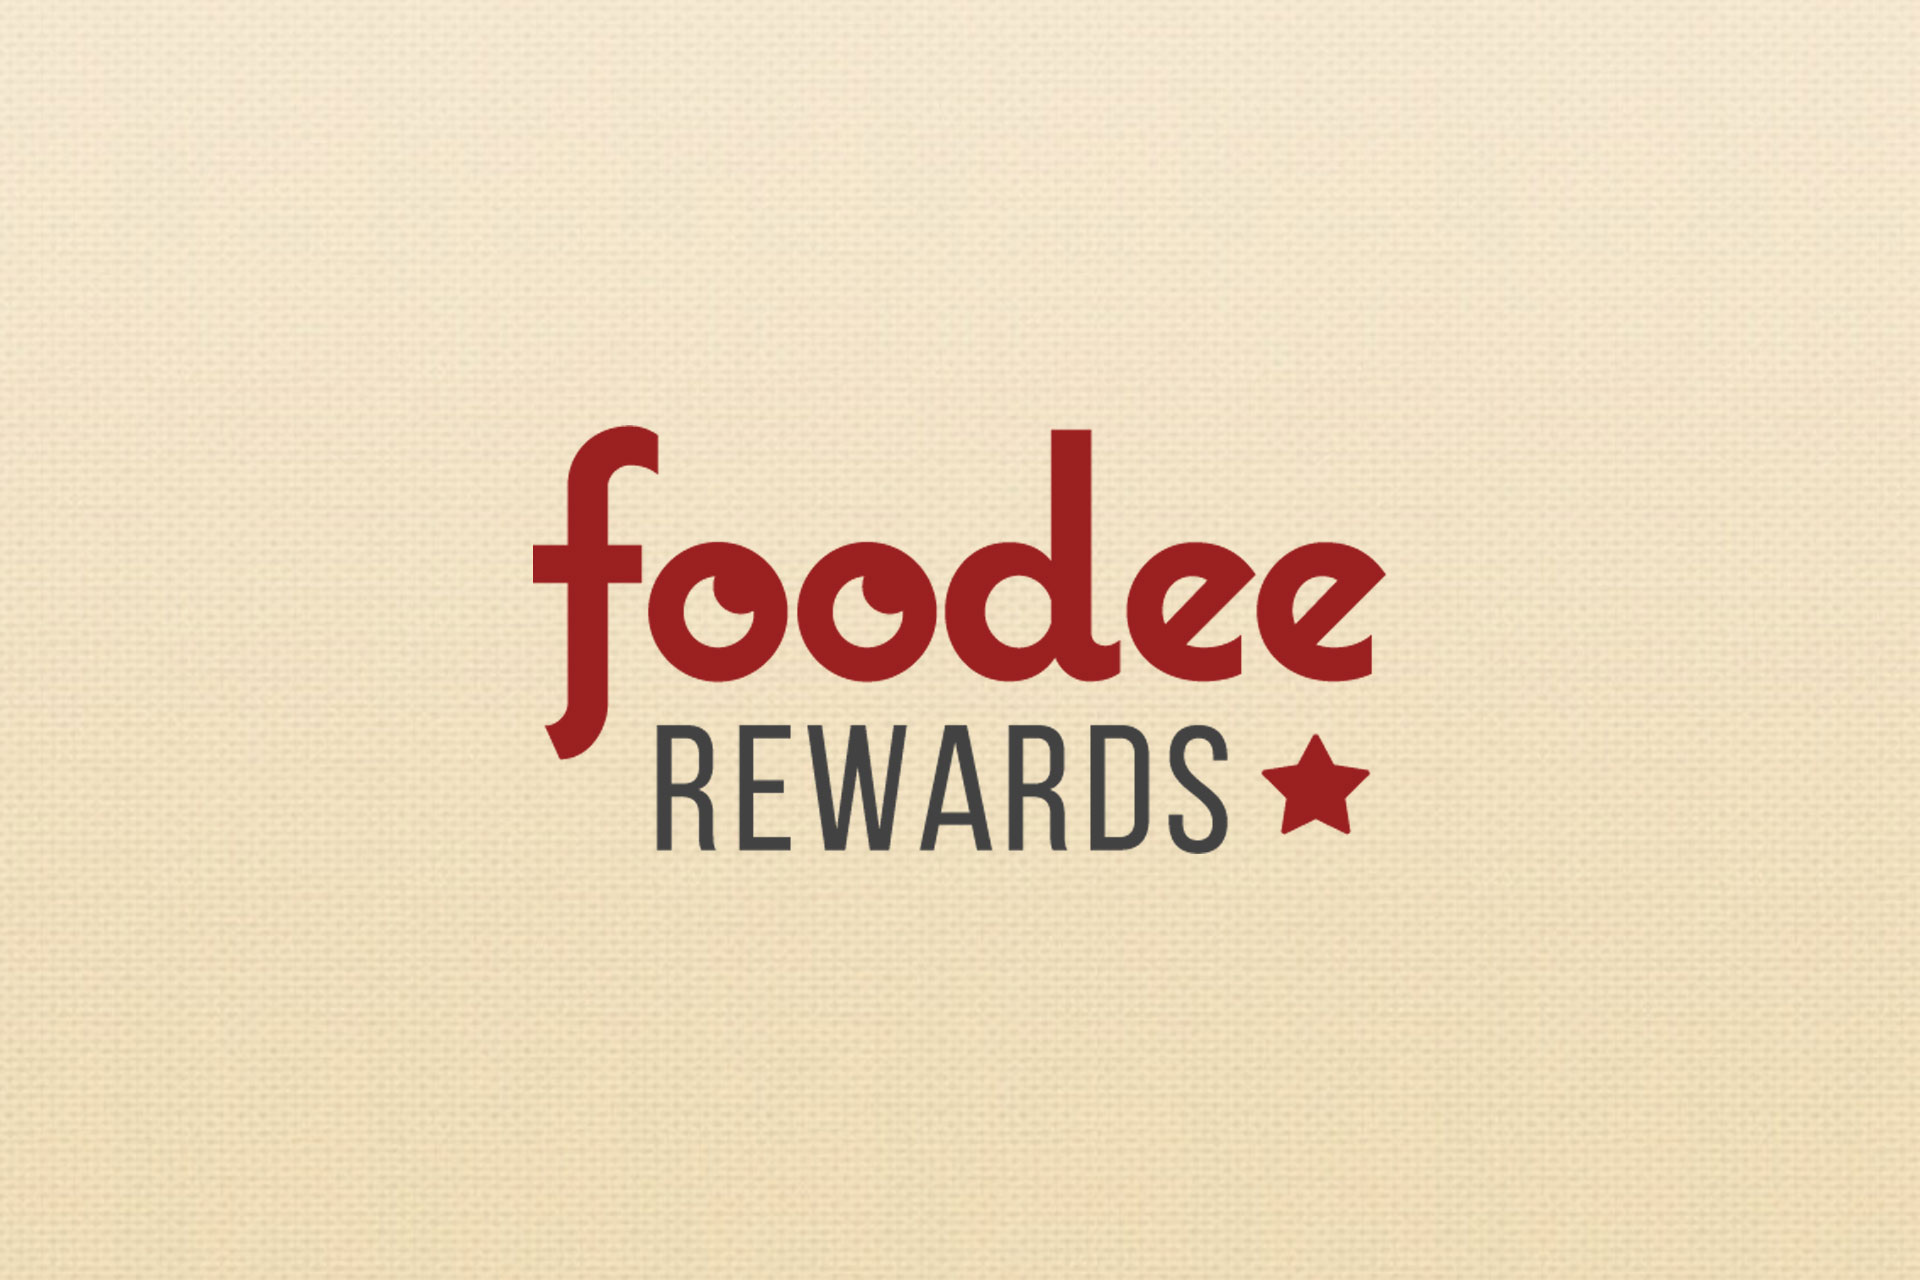 Foodee Rewards: Eat and Earn